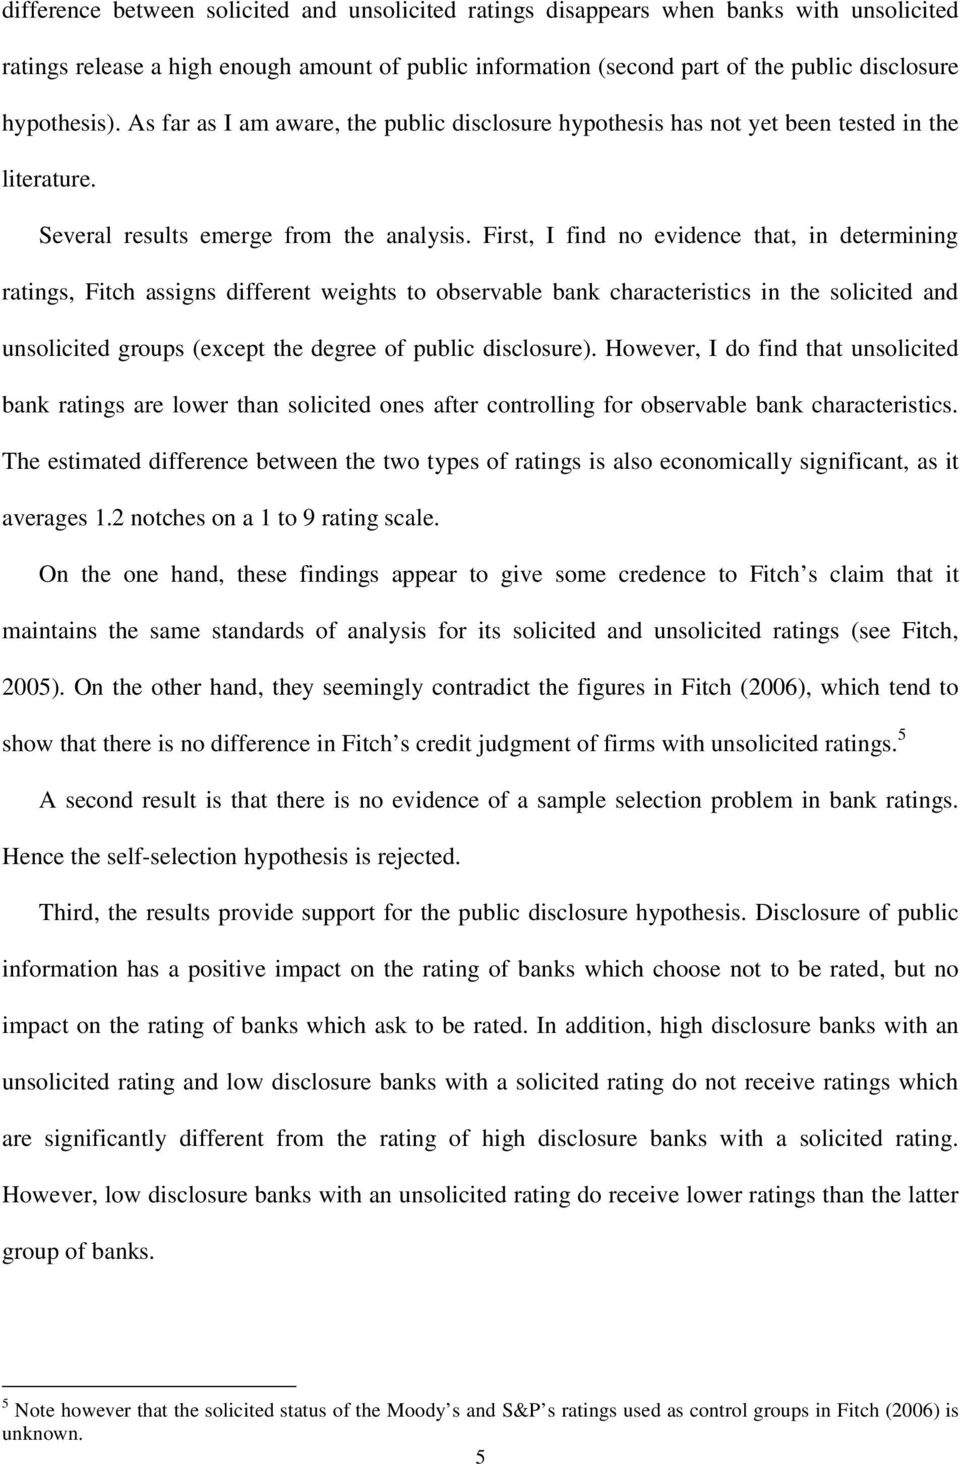 First, I find no evidence that, in determining ratings, Fitch assigns different weights to observable bank characteristics in the solicited and unsolicited groups (except the degree of public